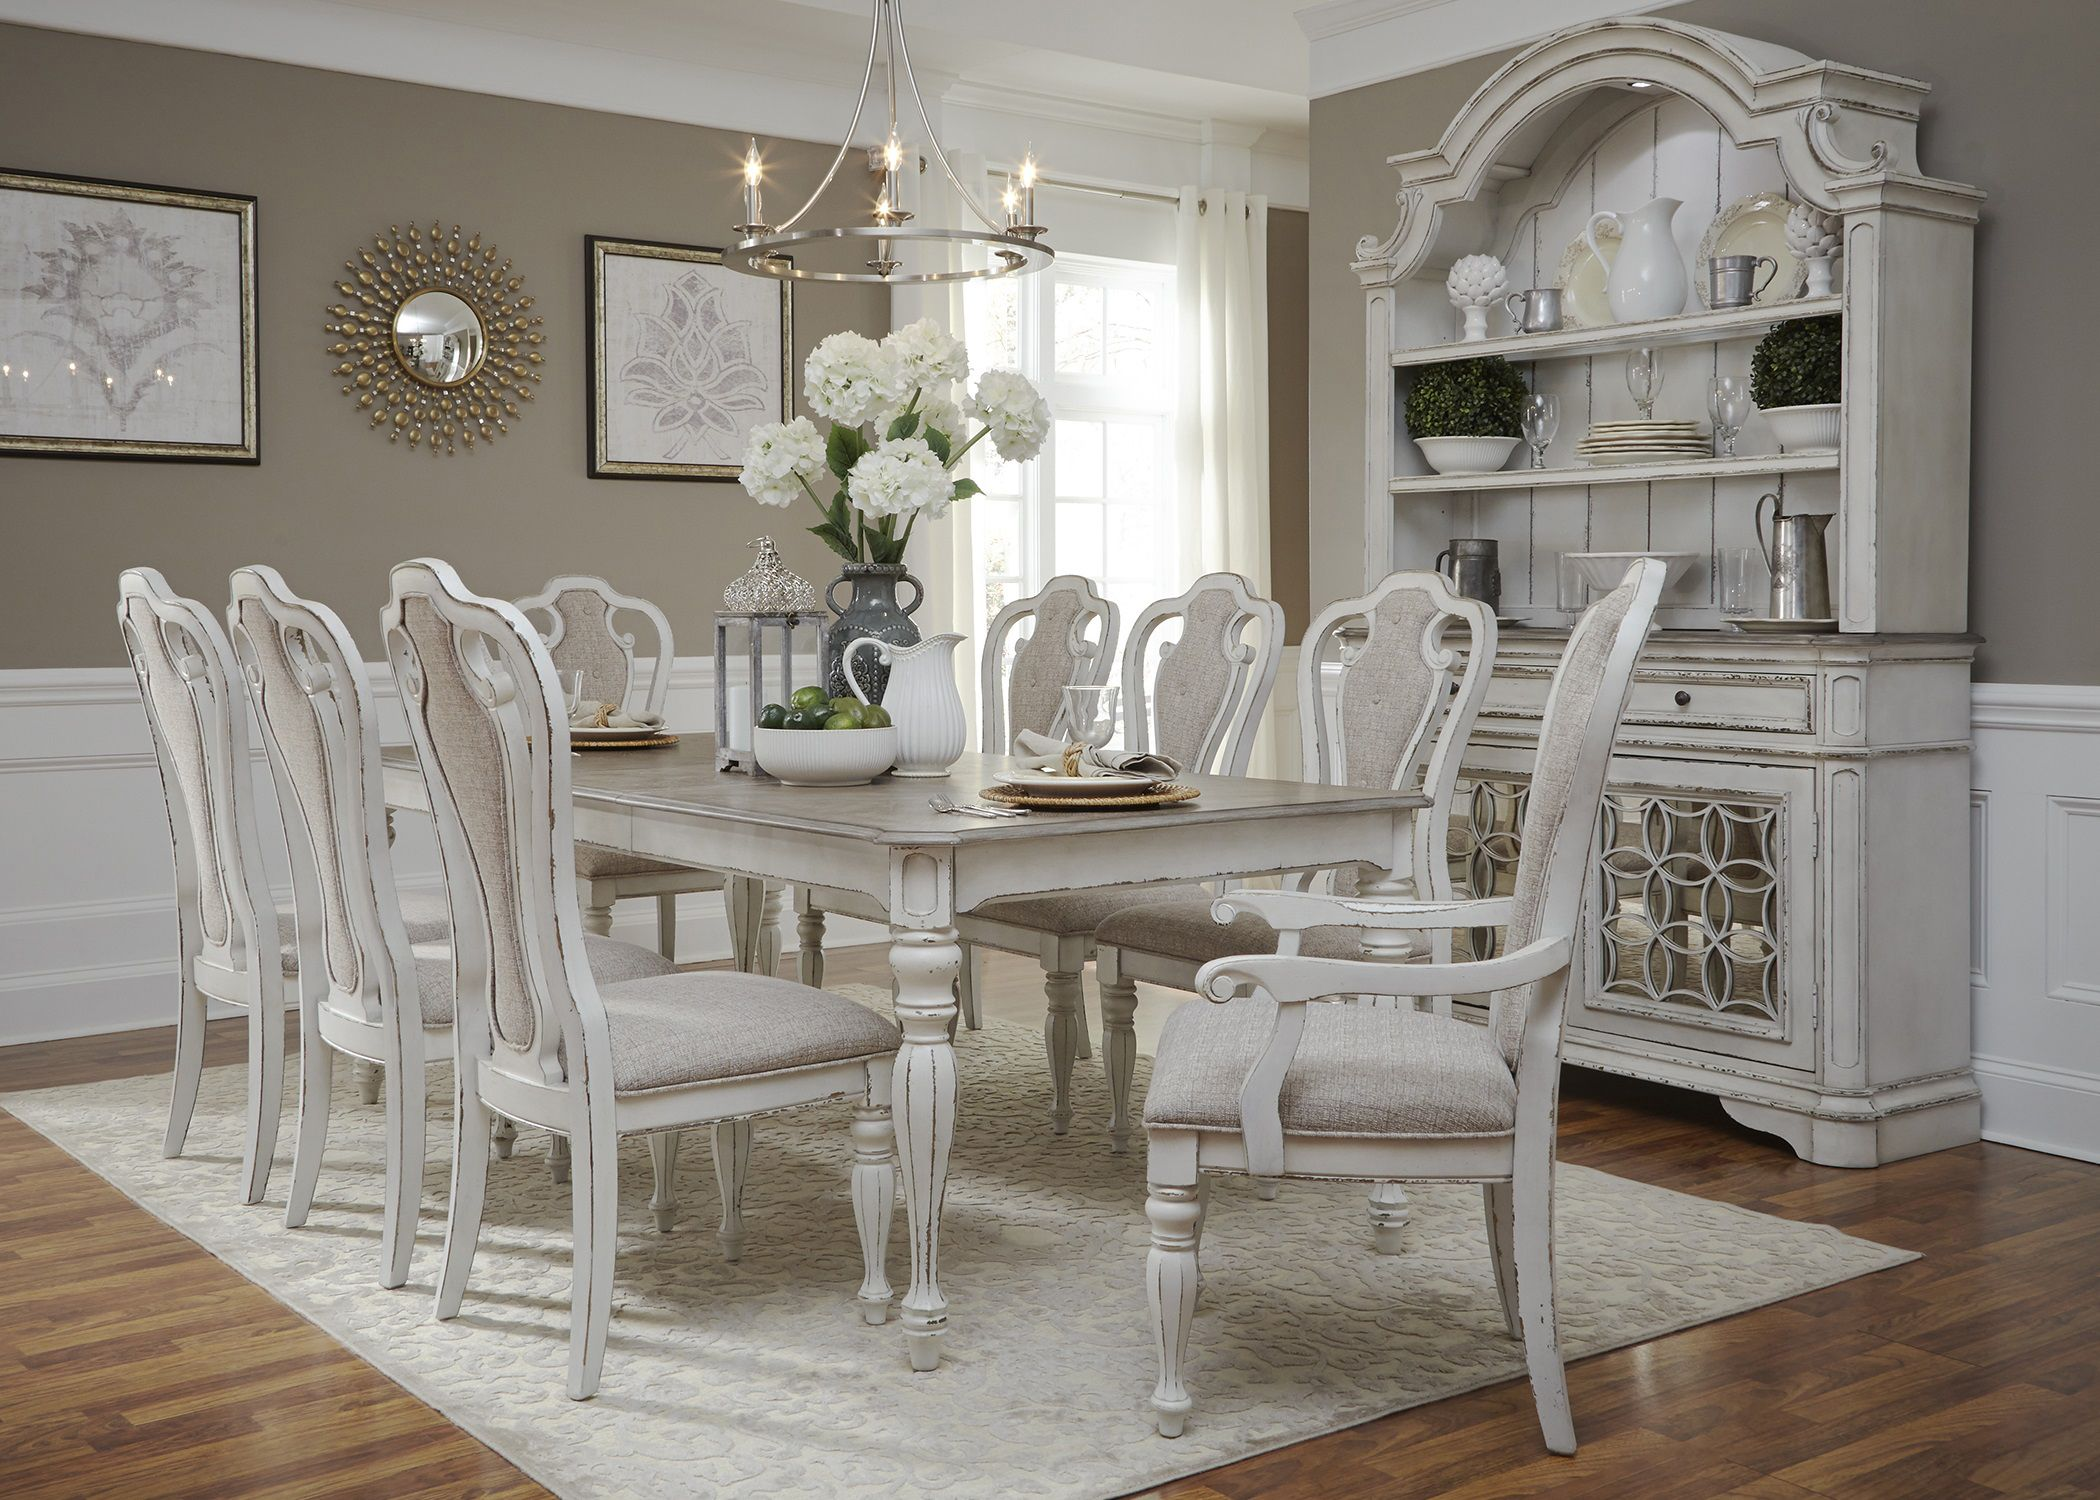 50+ Shabby Chic Dining Chairs You'll Love in 2020 - Visual ...